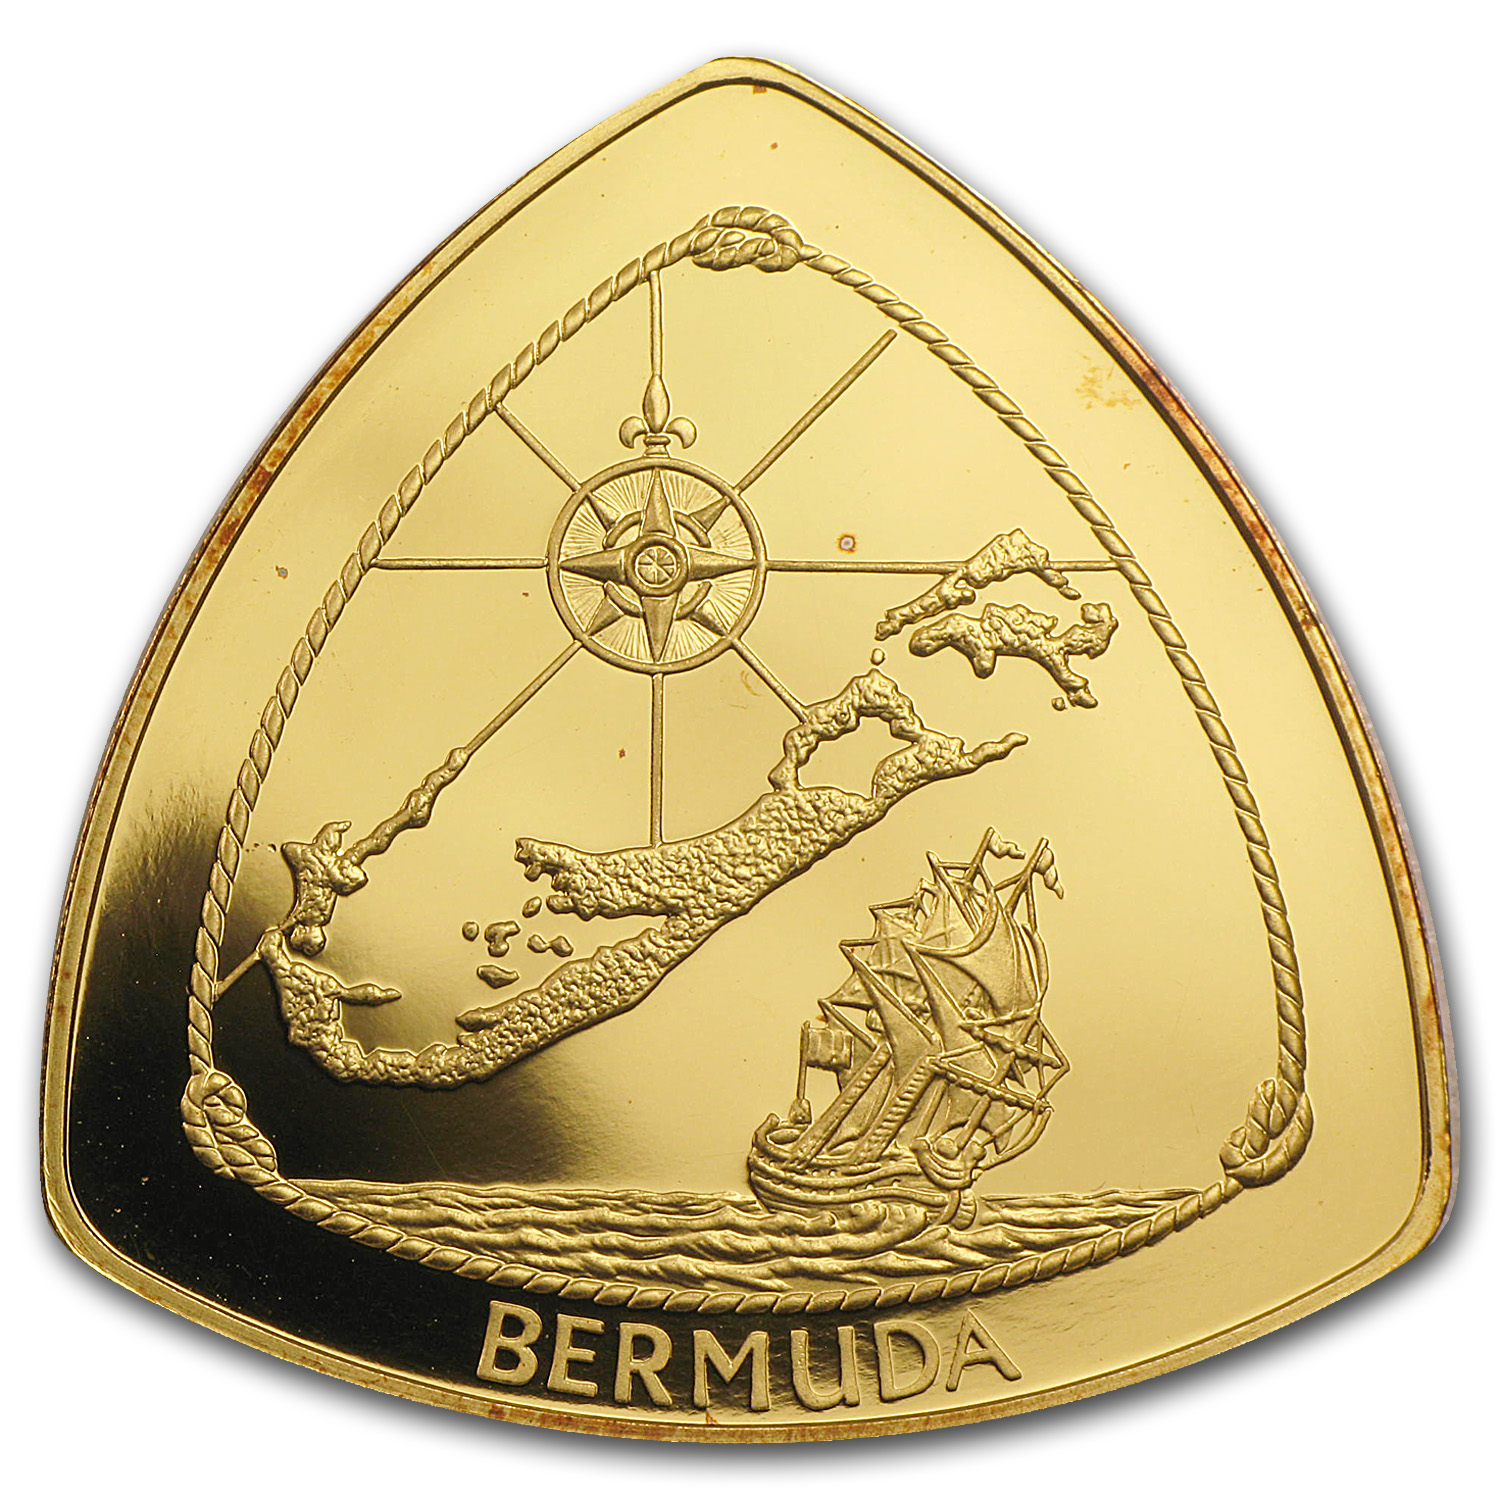 1996-1998 Bermuda Proof Gold $60 Triangle